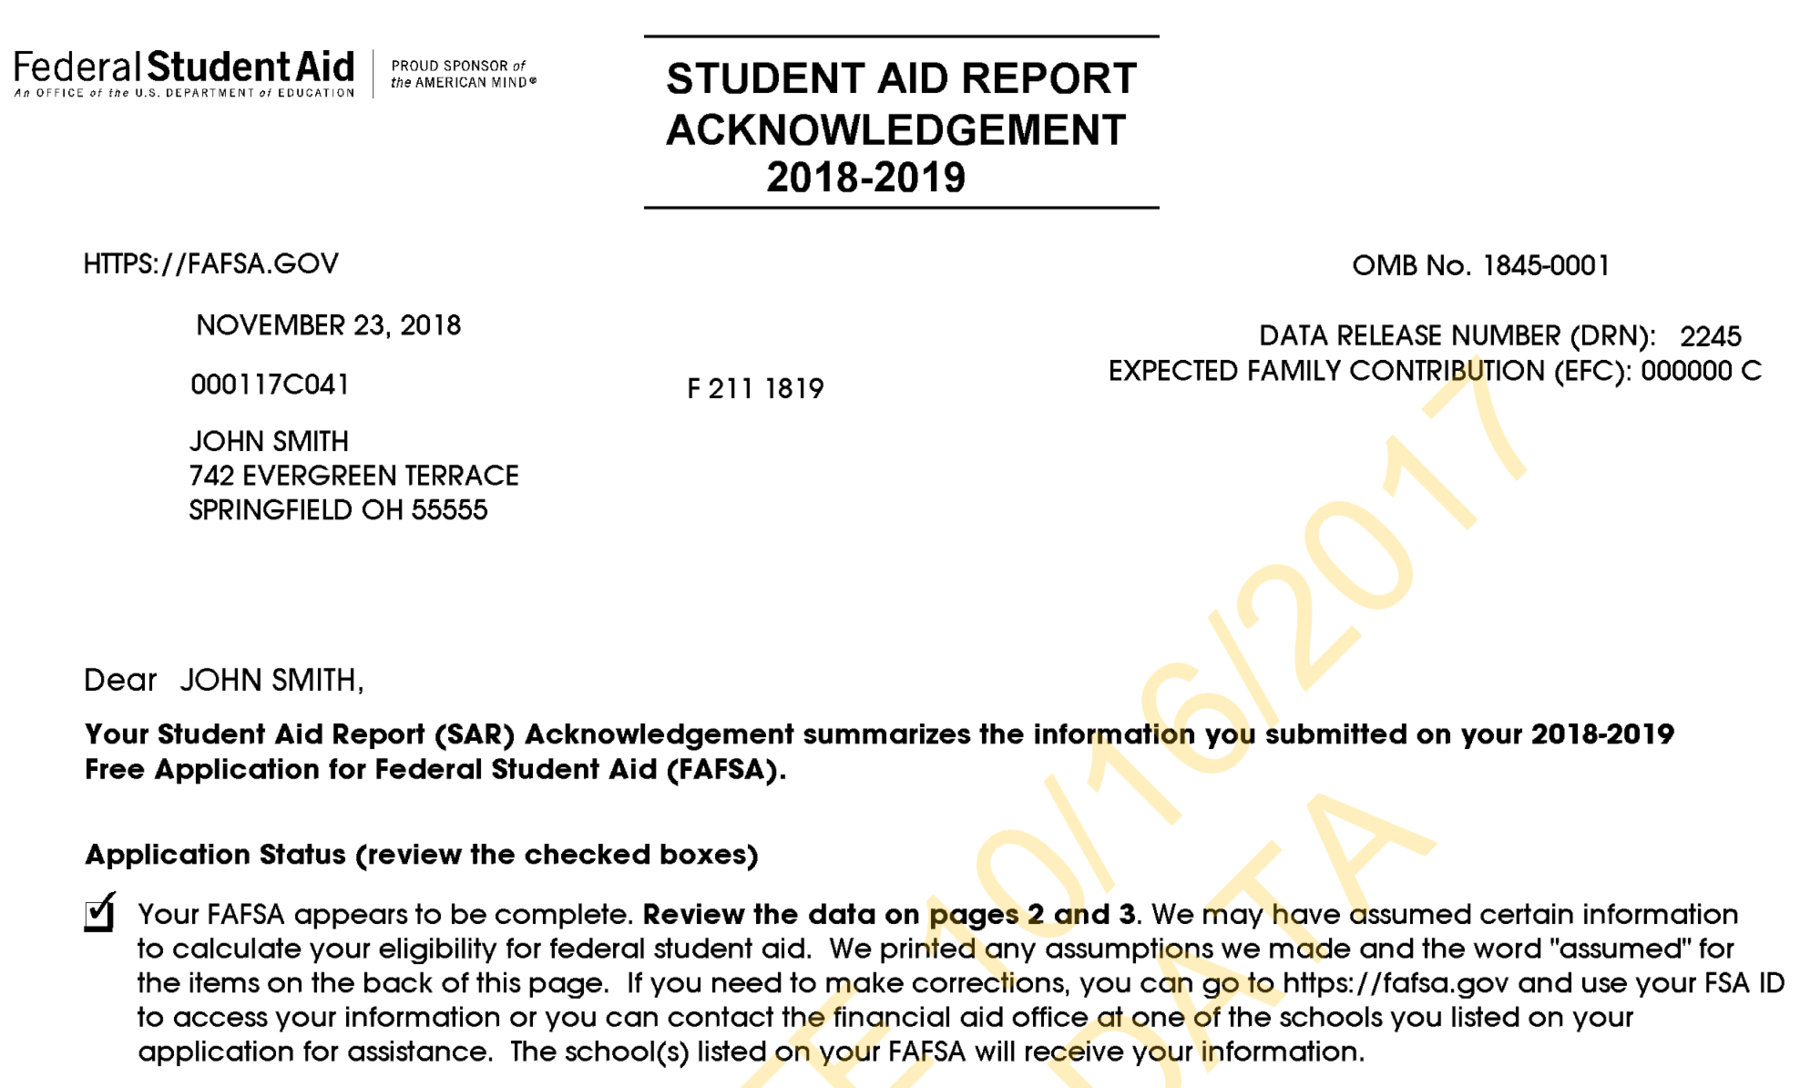 Css Profile Filers Will Not Receive An Efc From The College Board Which Owns And Operates This Financial Aid Lication